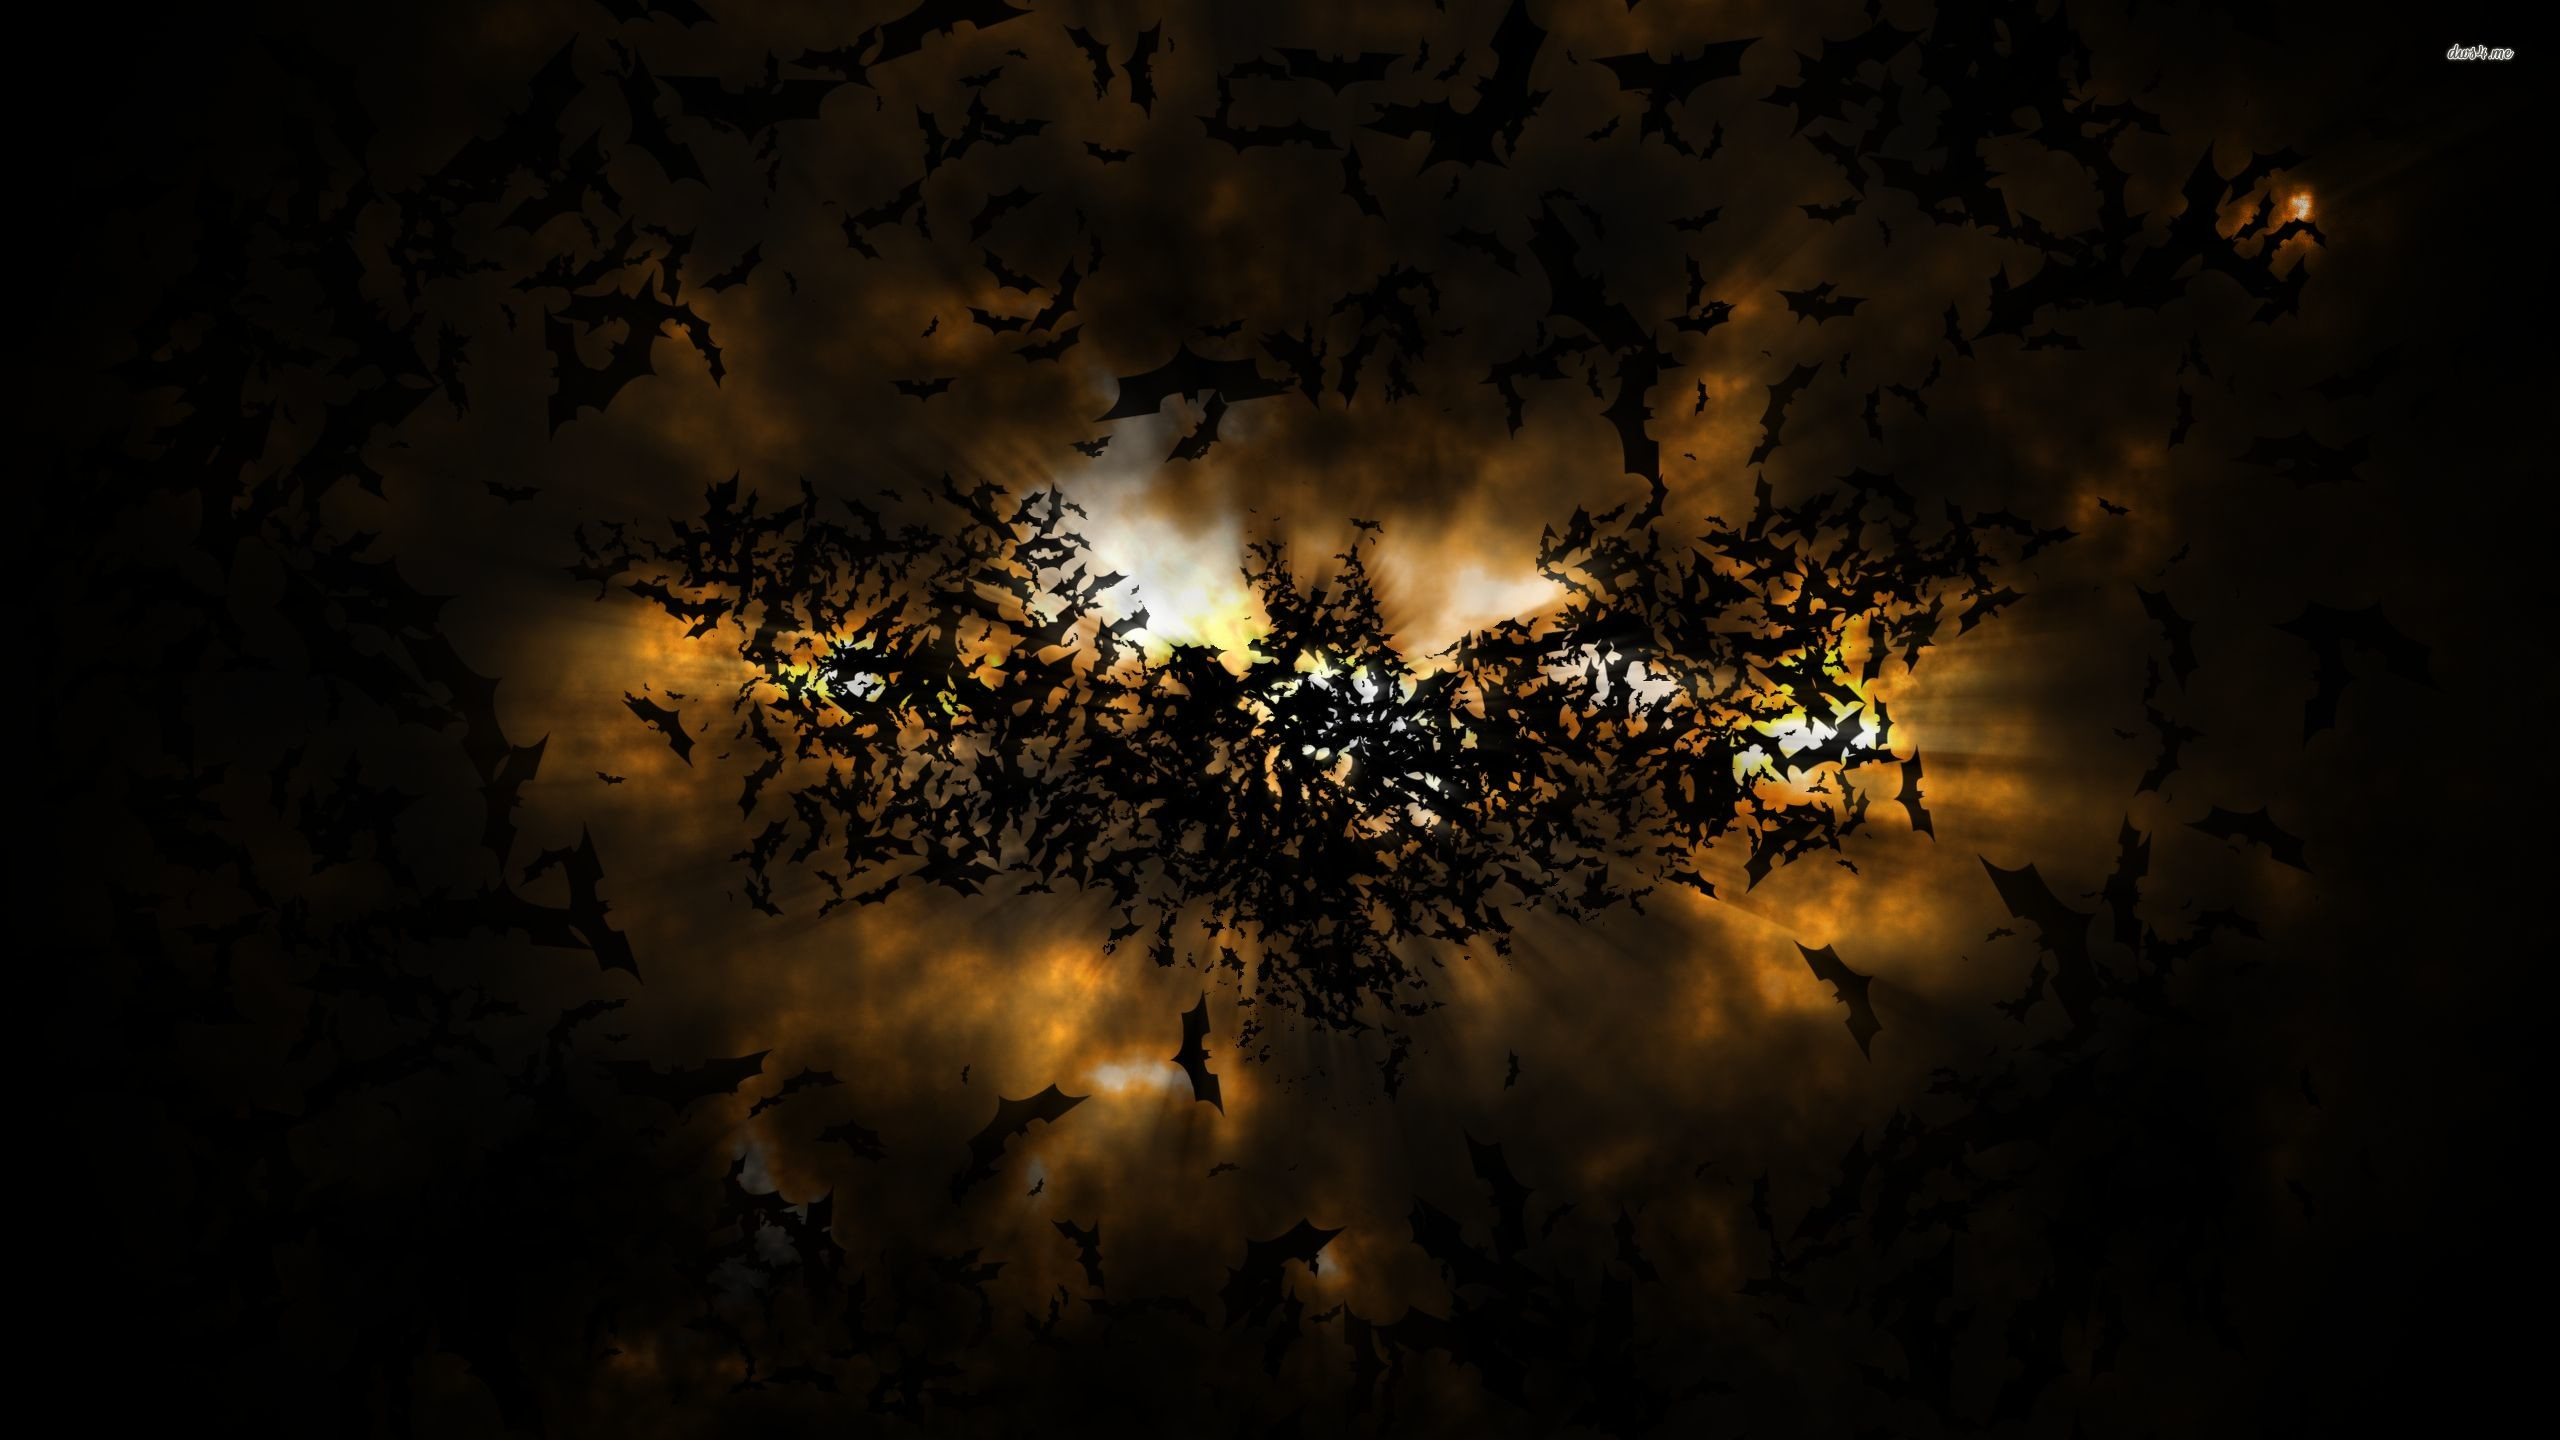 2560x1440 Batman logo formed from bats wallpaper - Digital Art wallpapers .